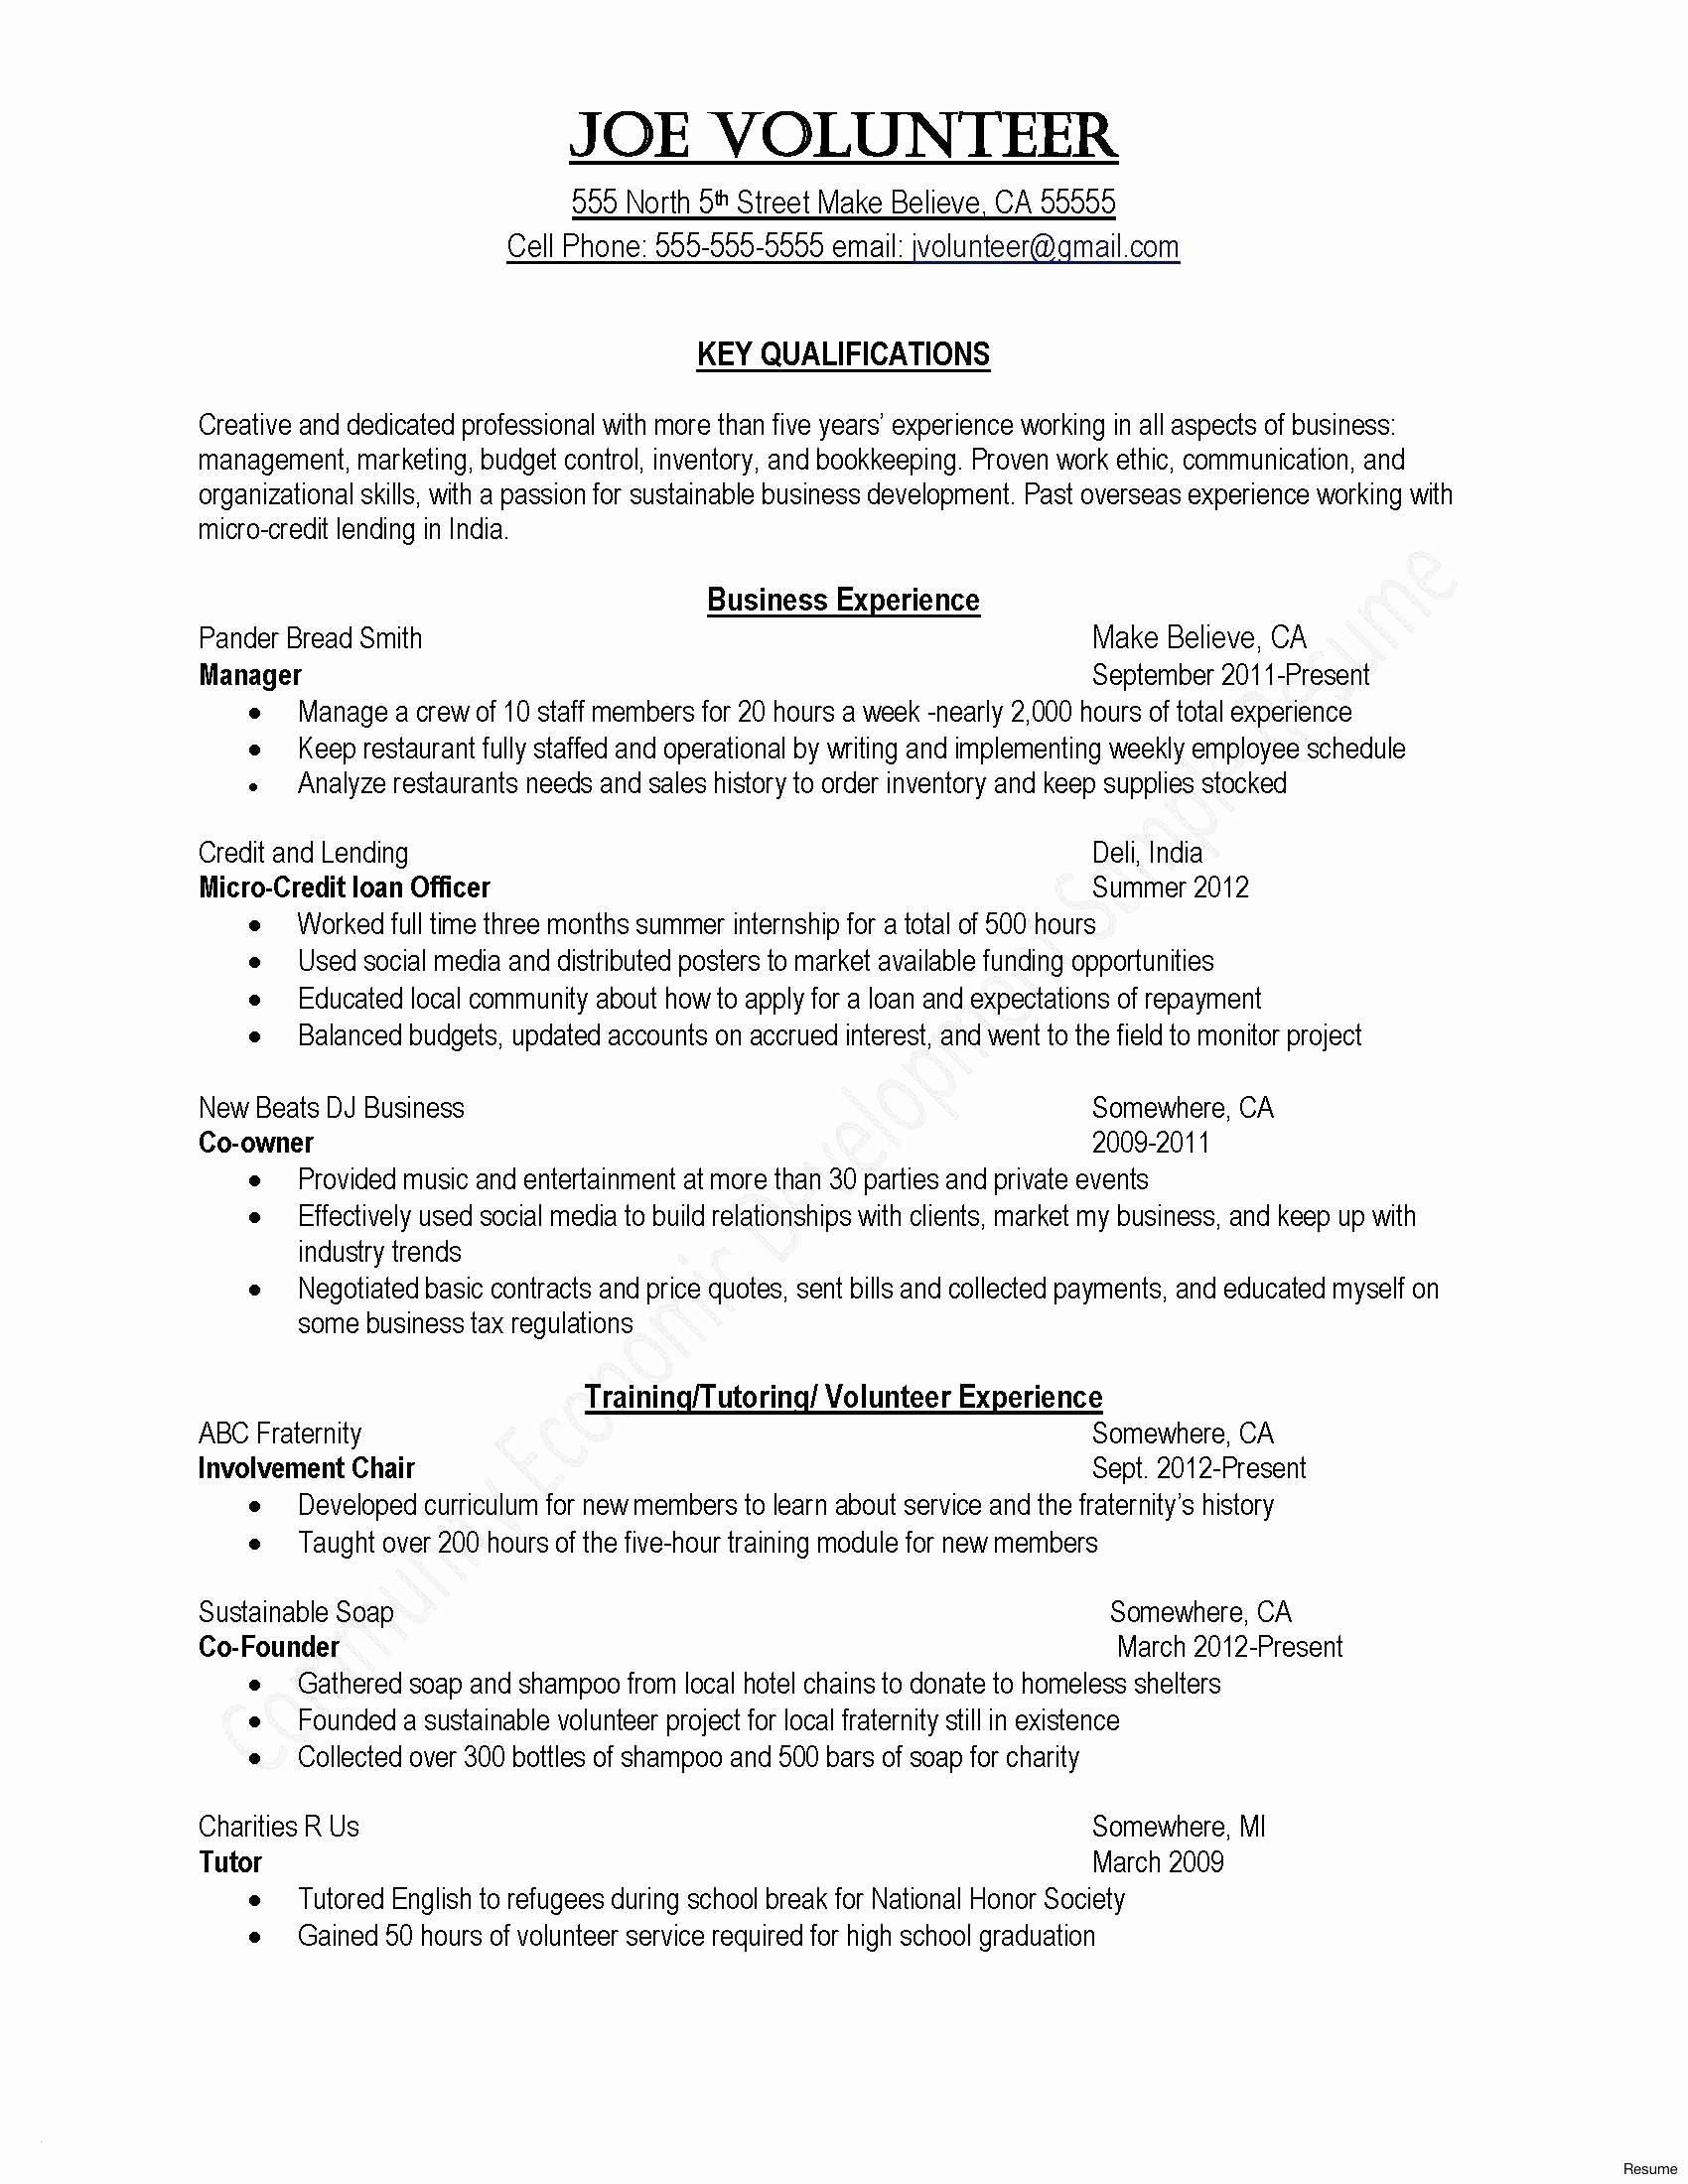 Military Experience On Resume - Military Resume Templates Inspirationa Military Experience Resume